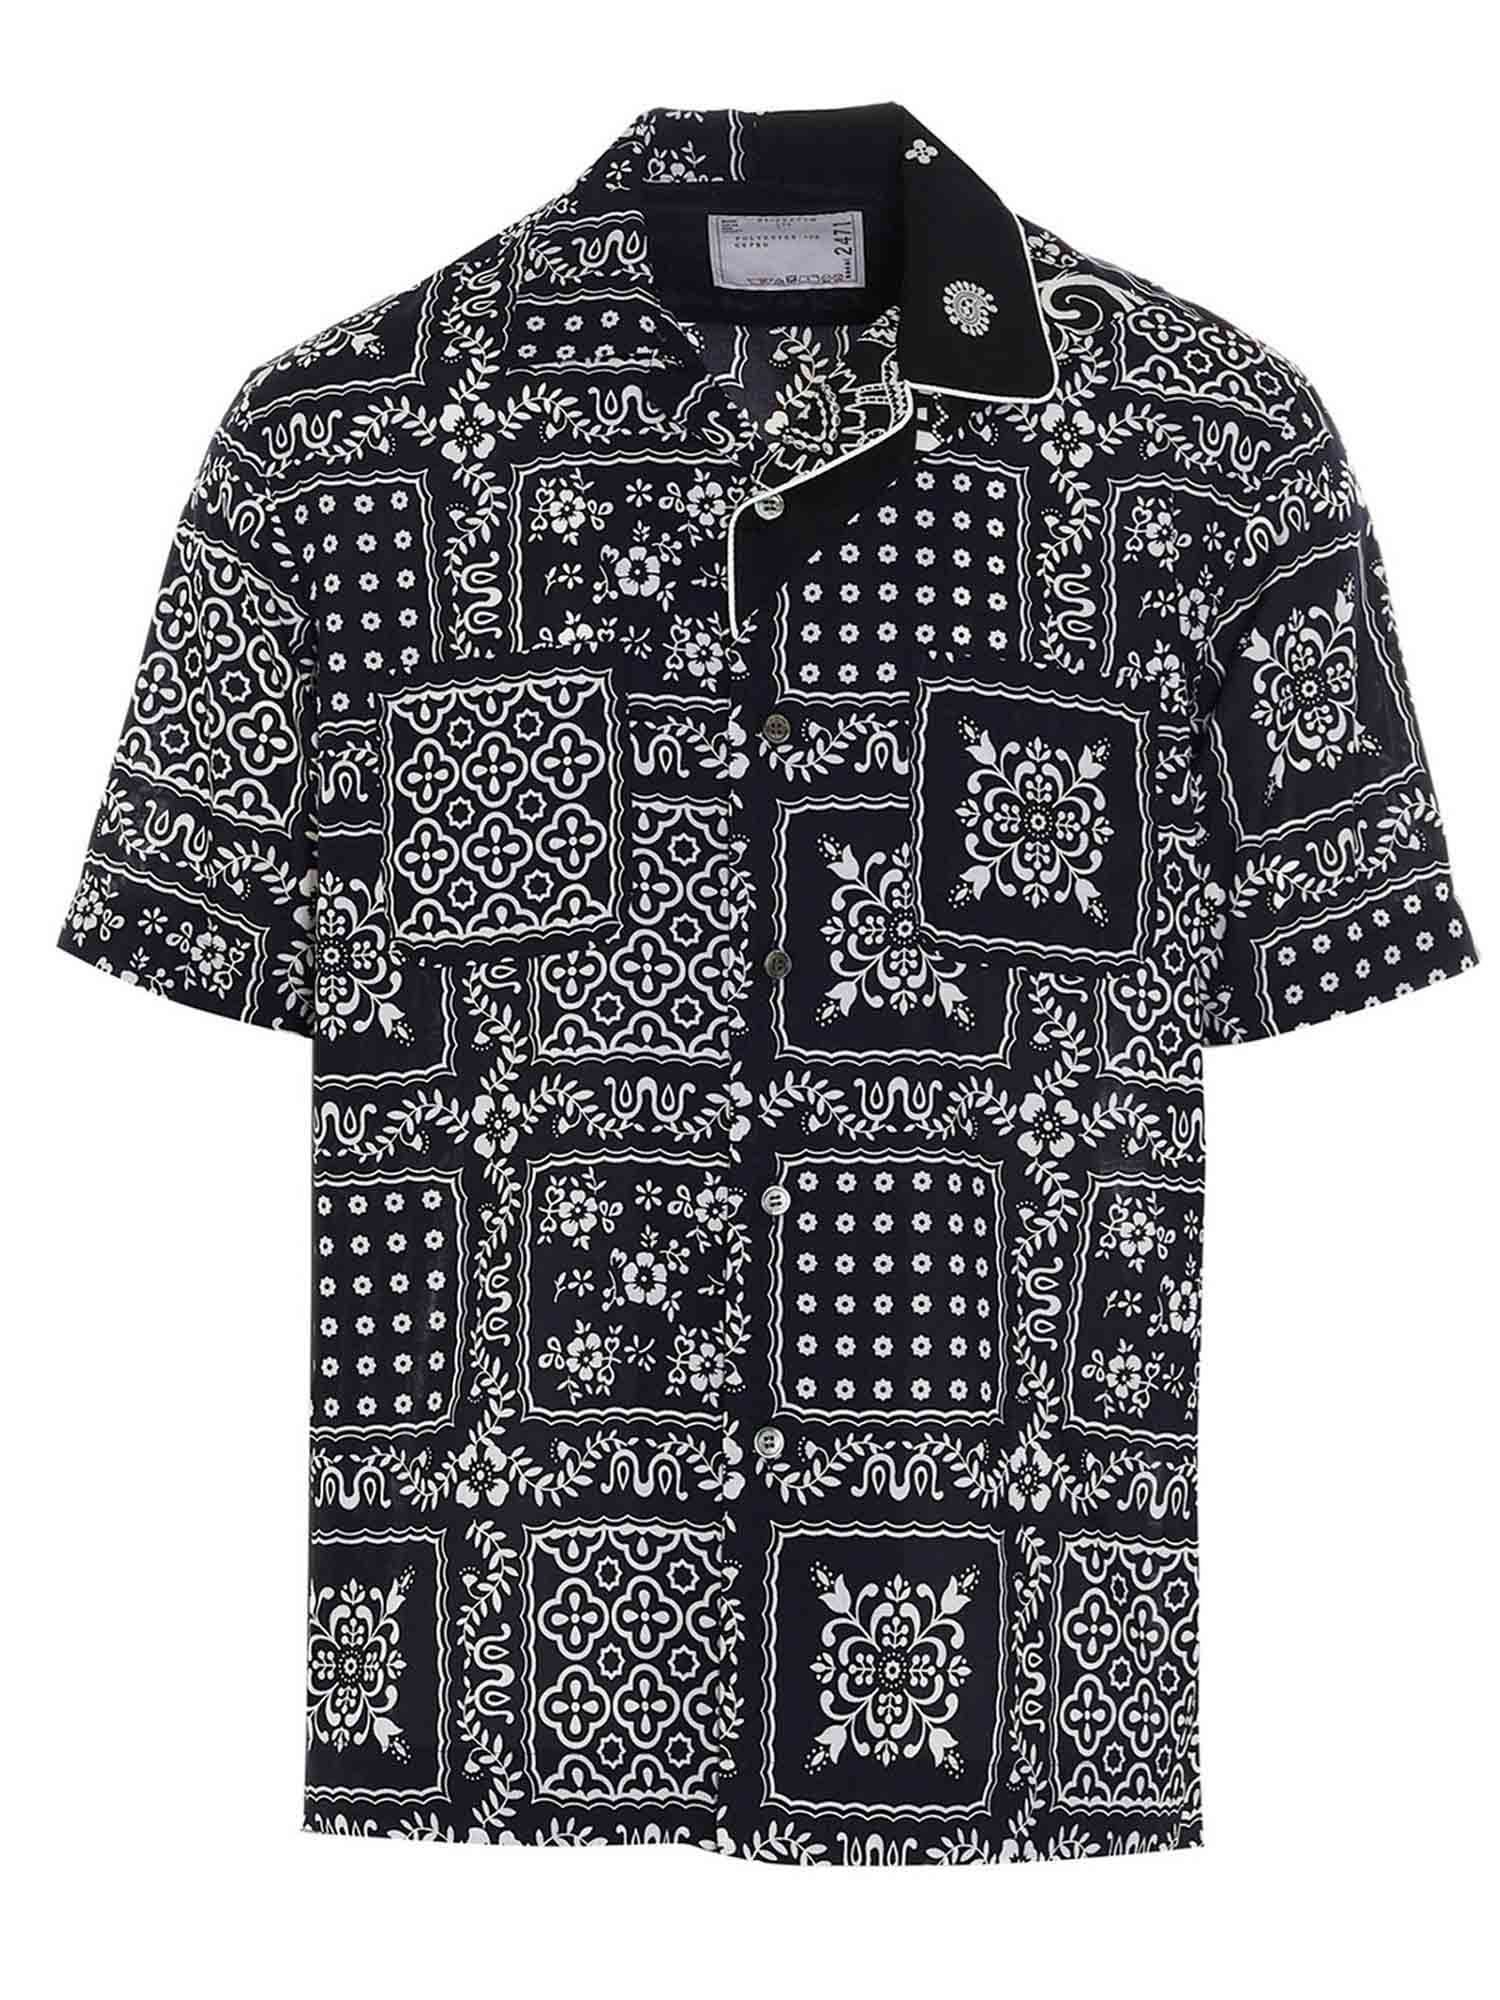 Sacai PAISLEY PATTERNED SHIRT IN BLUE